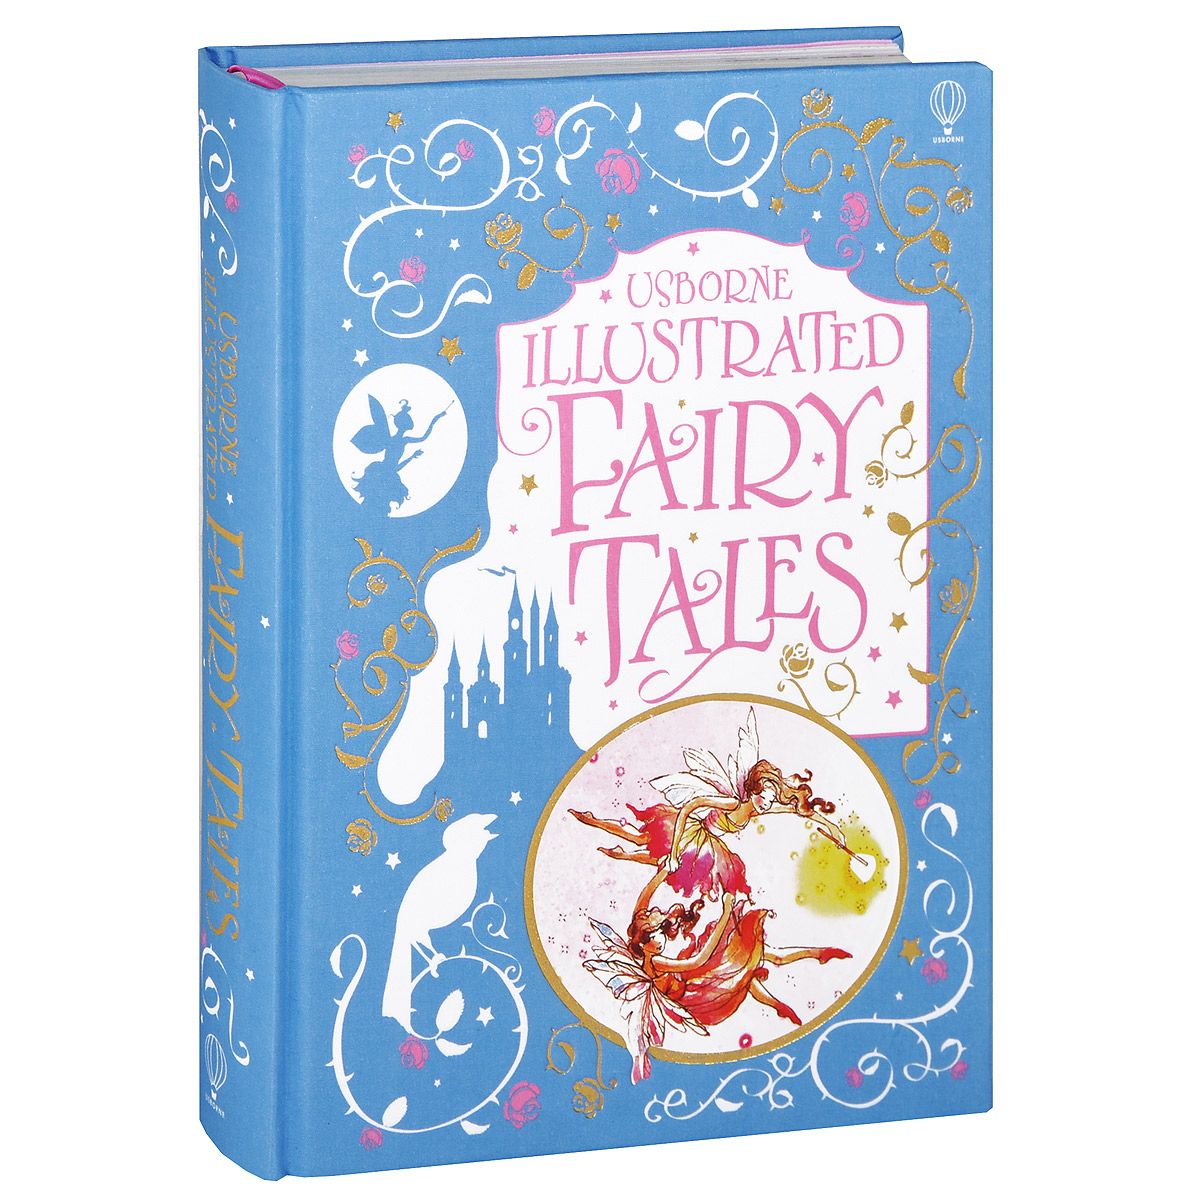 Illustrated Fairy Tales well loved tales cinderella a ladybird colouring book